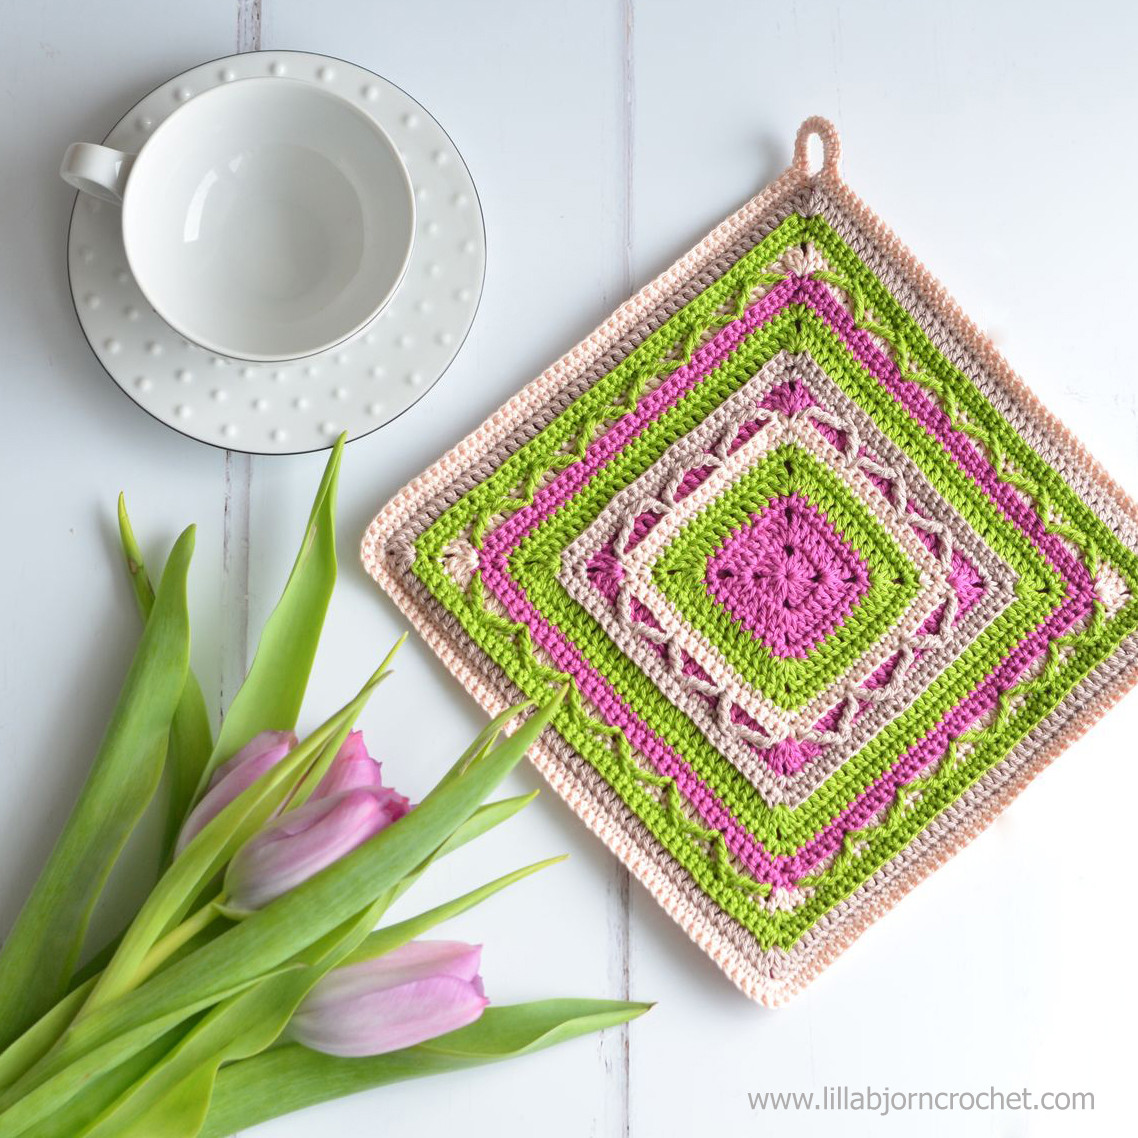 Crochet Potholder Pattern Awesome Crochet Potholders Art In Small Free Pattern Of Amazing 43 Pictures Crochet Potholder Pattern